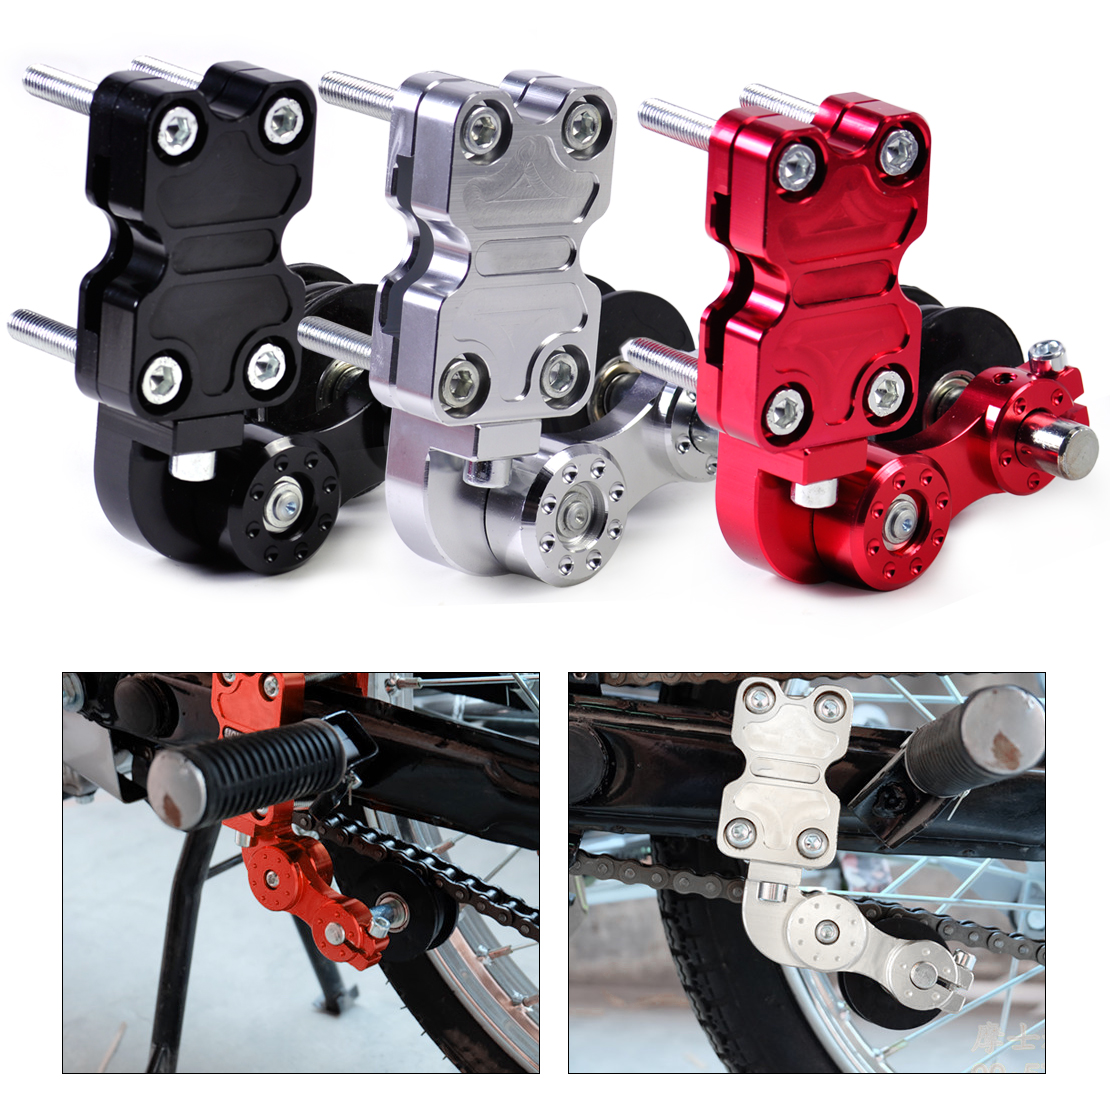 DWCX Universal Motorcycle Aluminum Chain Tensioner Bolt on Roller Adjustable for Motorcycle Dirt Street Bike Chopper Motocross motorcycle adjustable aluminum chain tensioner adjuster bolt on roller motocross dirt street bike atv for honda kawasaki yamaha